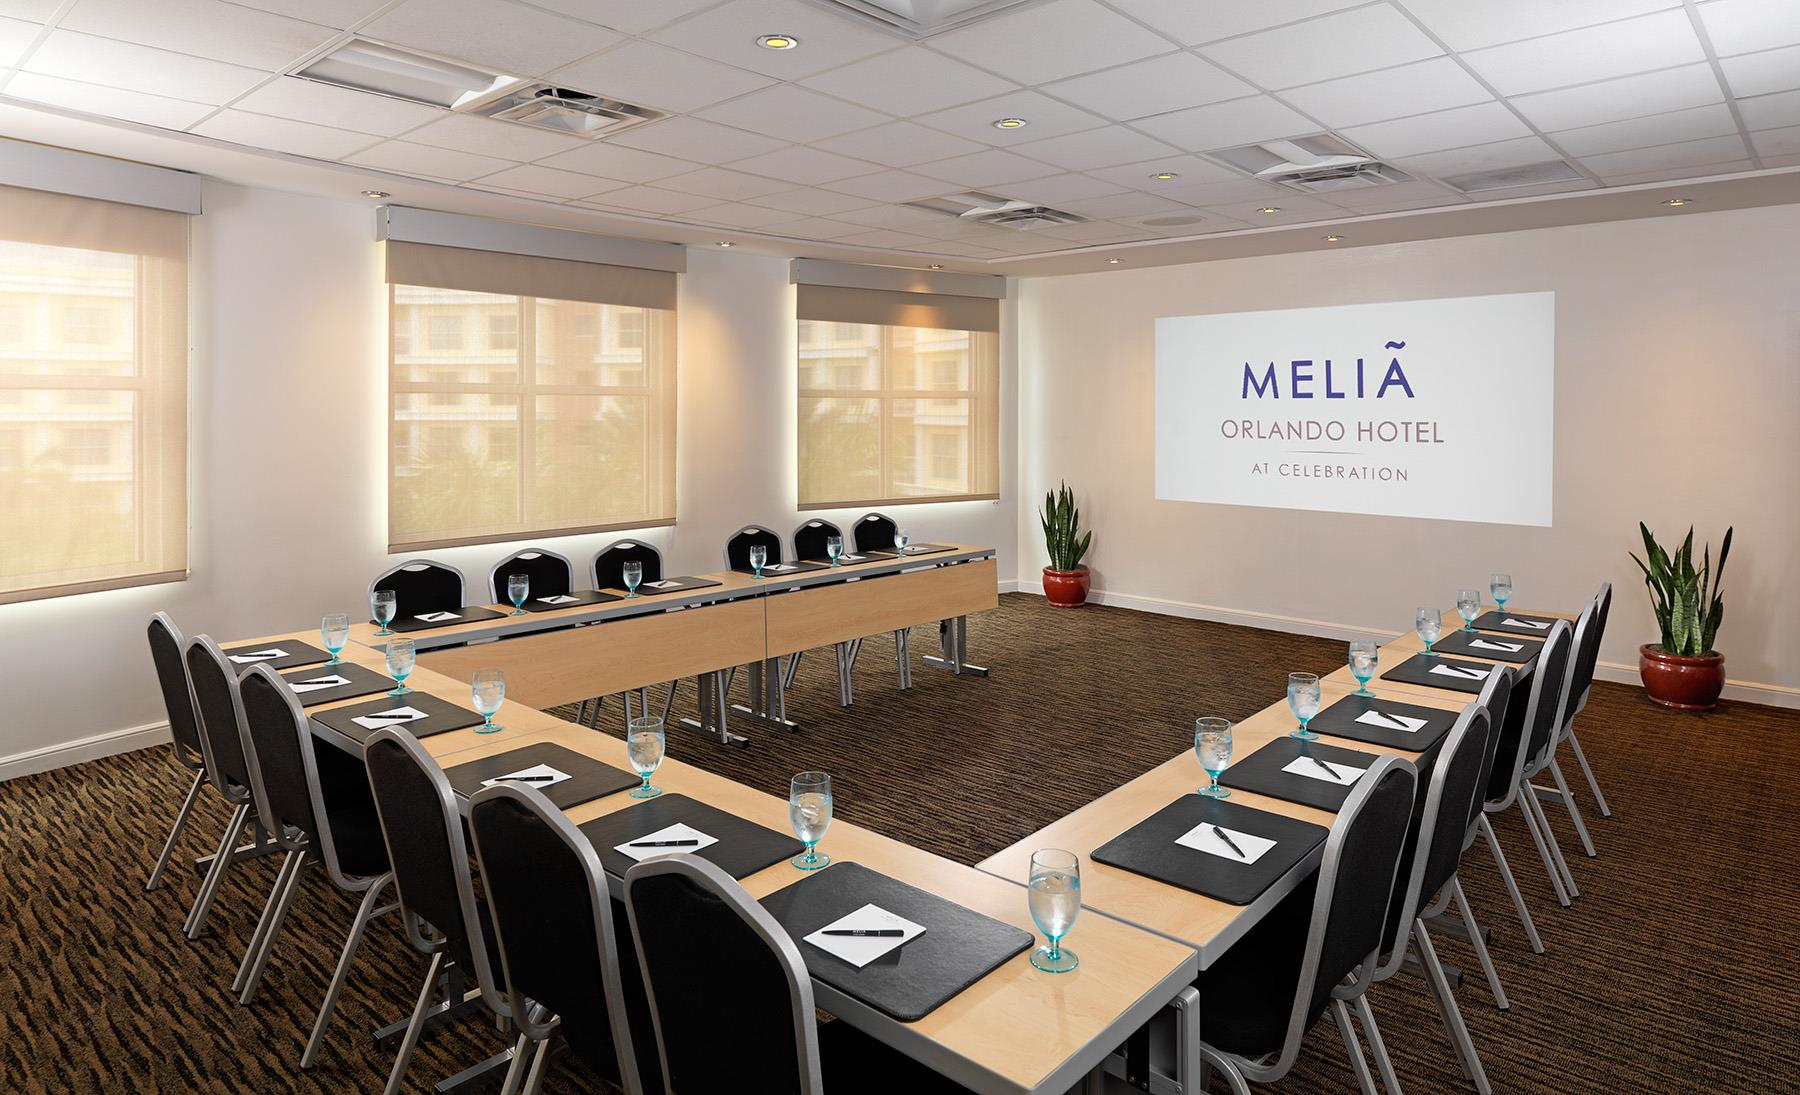 Melia Orlando Suite Hotel at Celebration - 90 Executive Boardroom